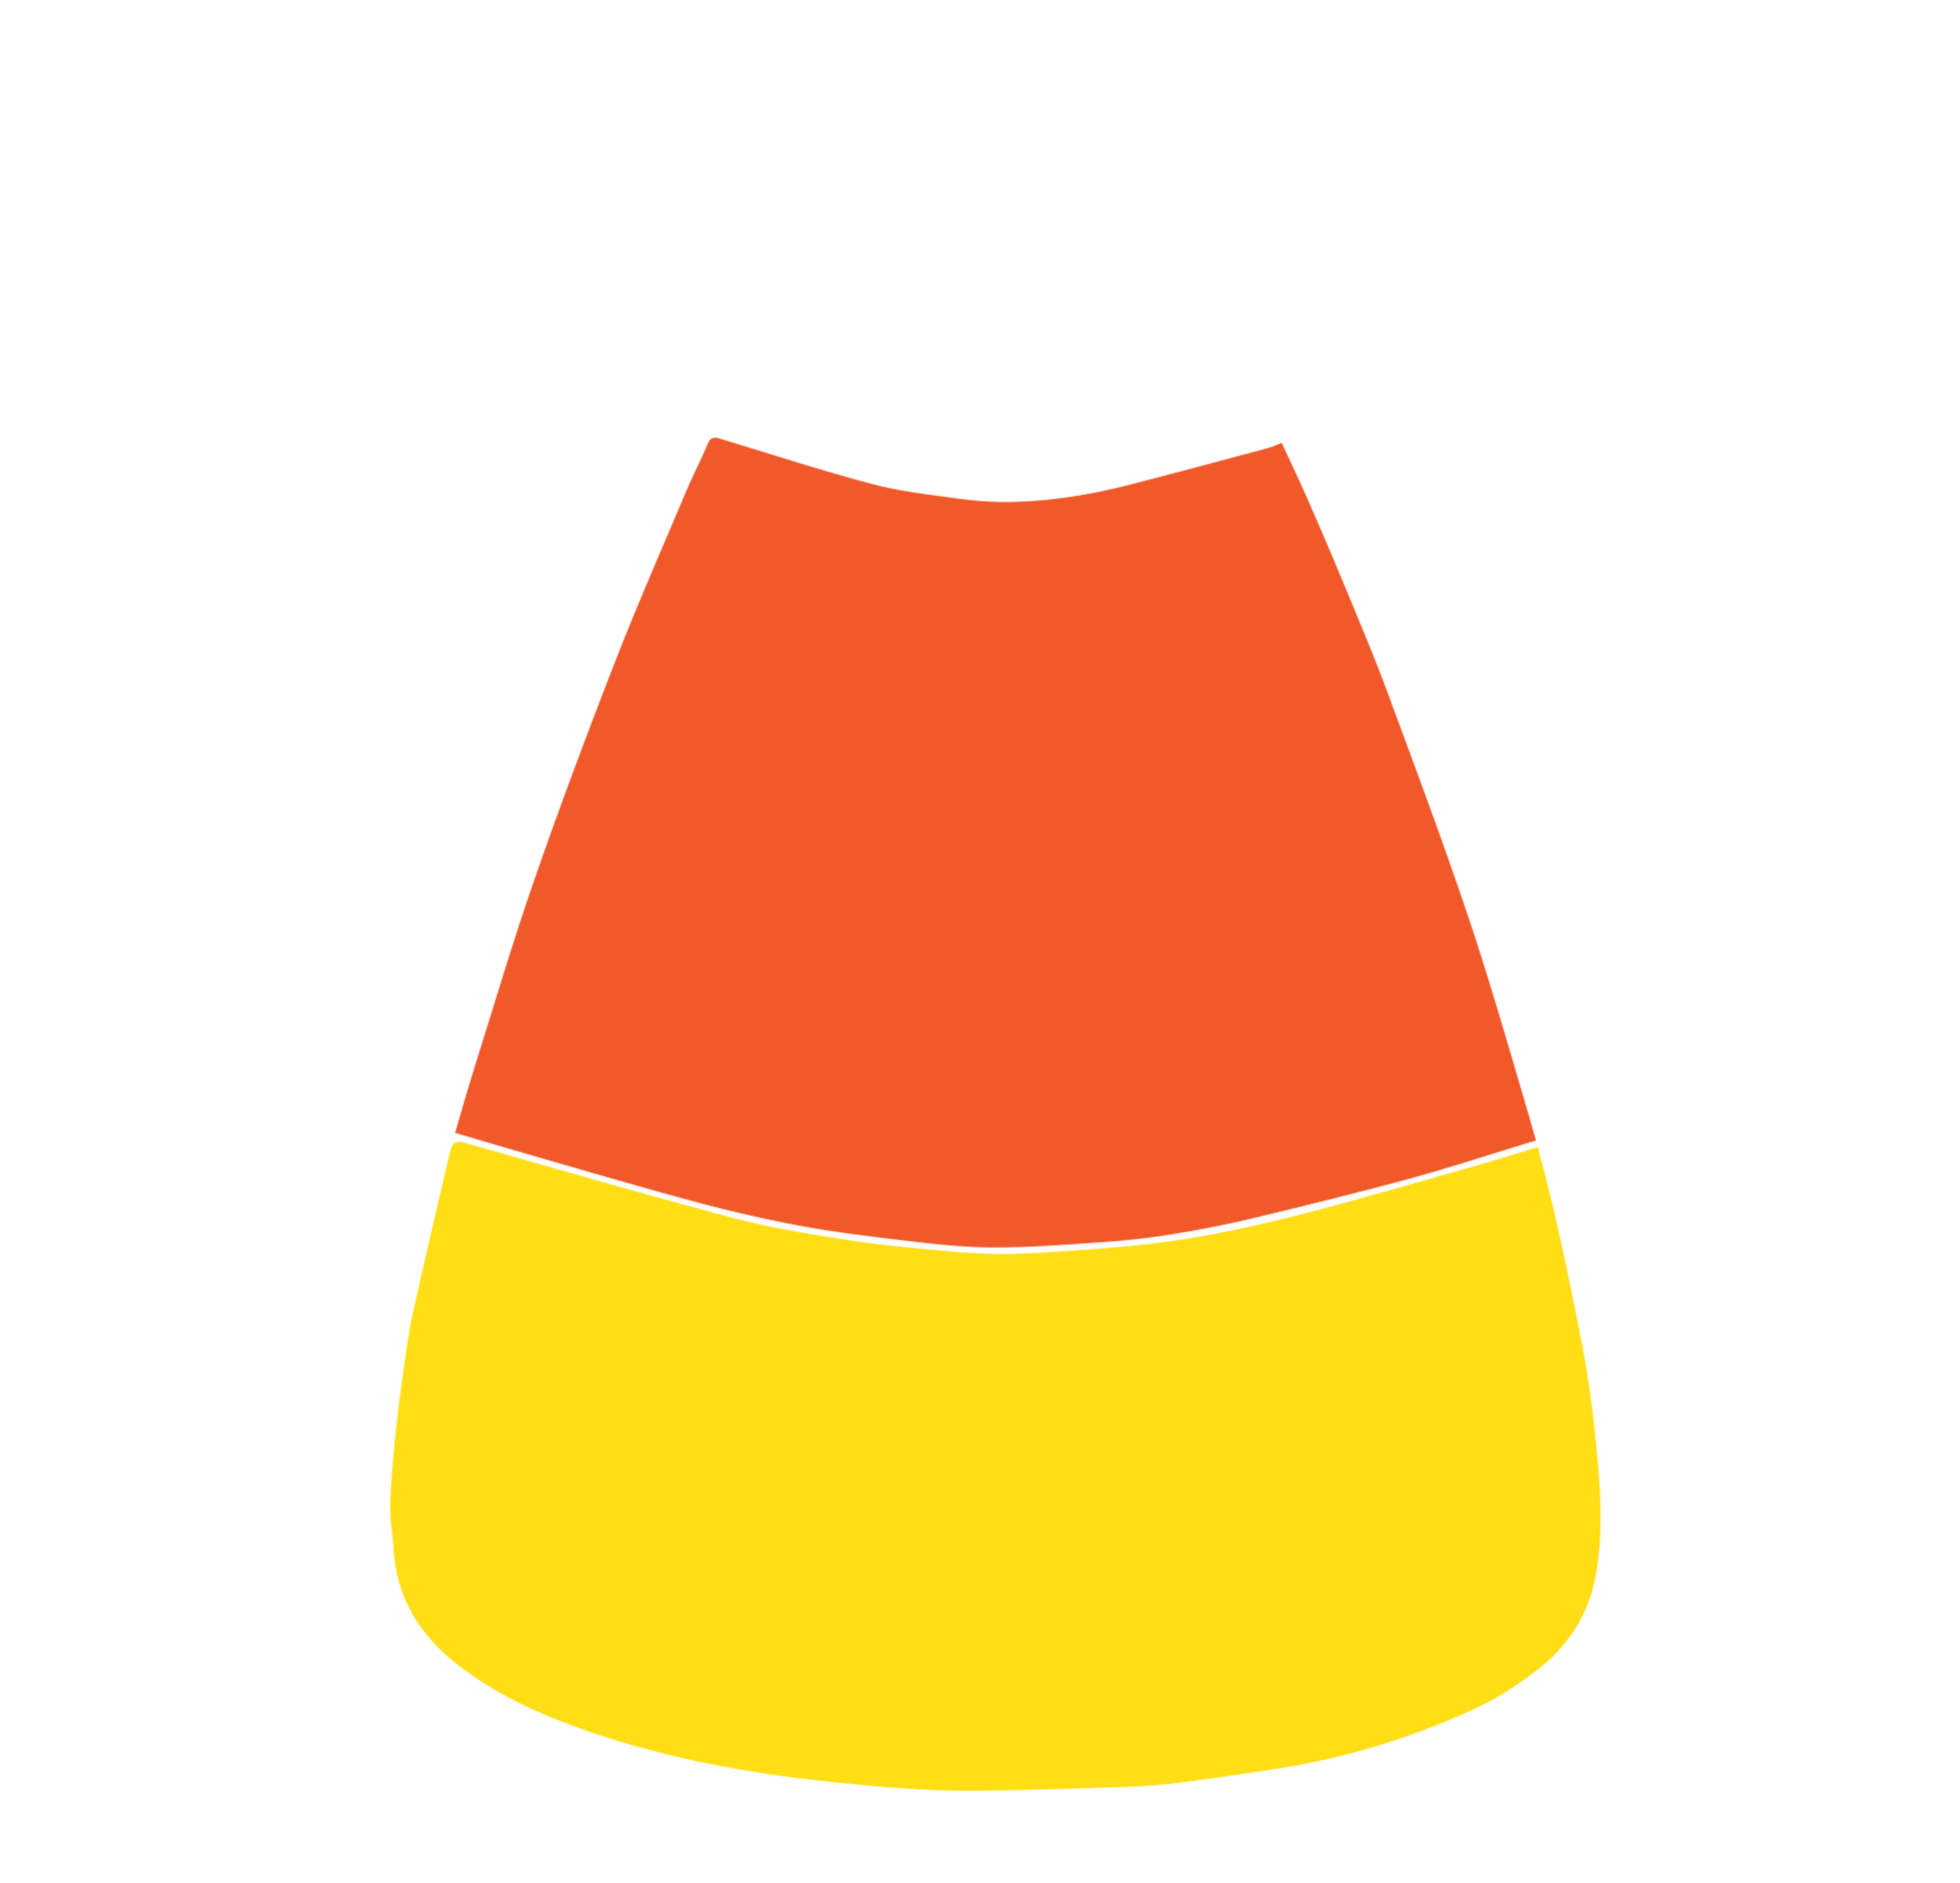 Candy corn border clip art free clipart images 2